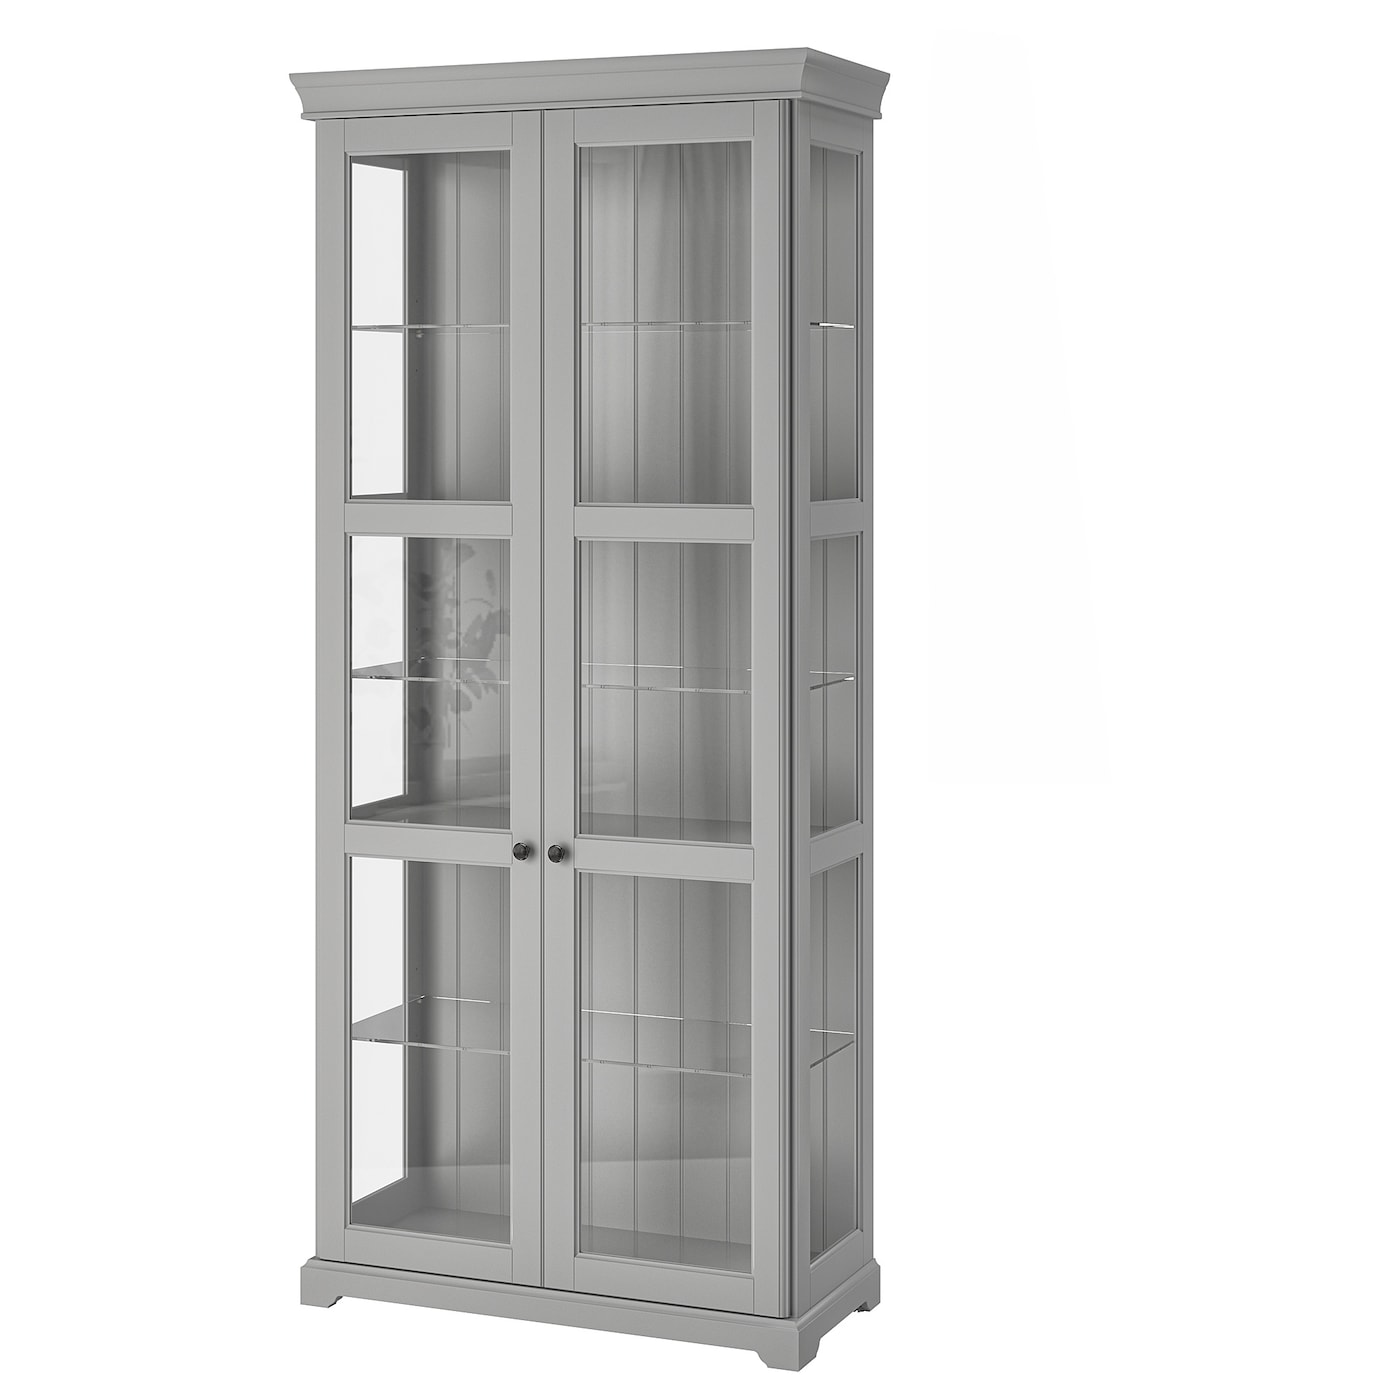 Ikea Liatorp Glass Door Cabinet 2 Fixed Shelves For High Ility